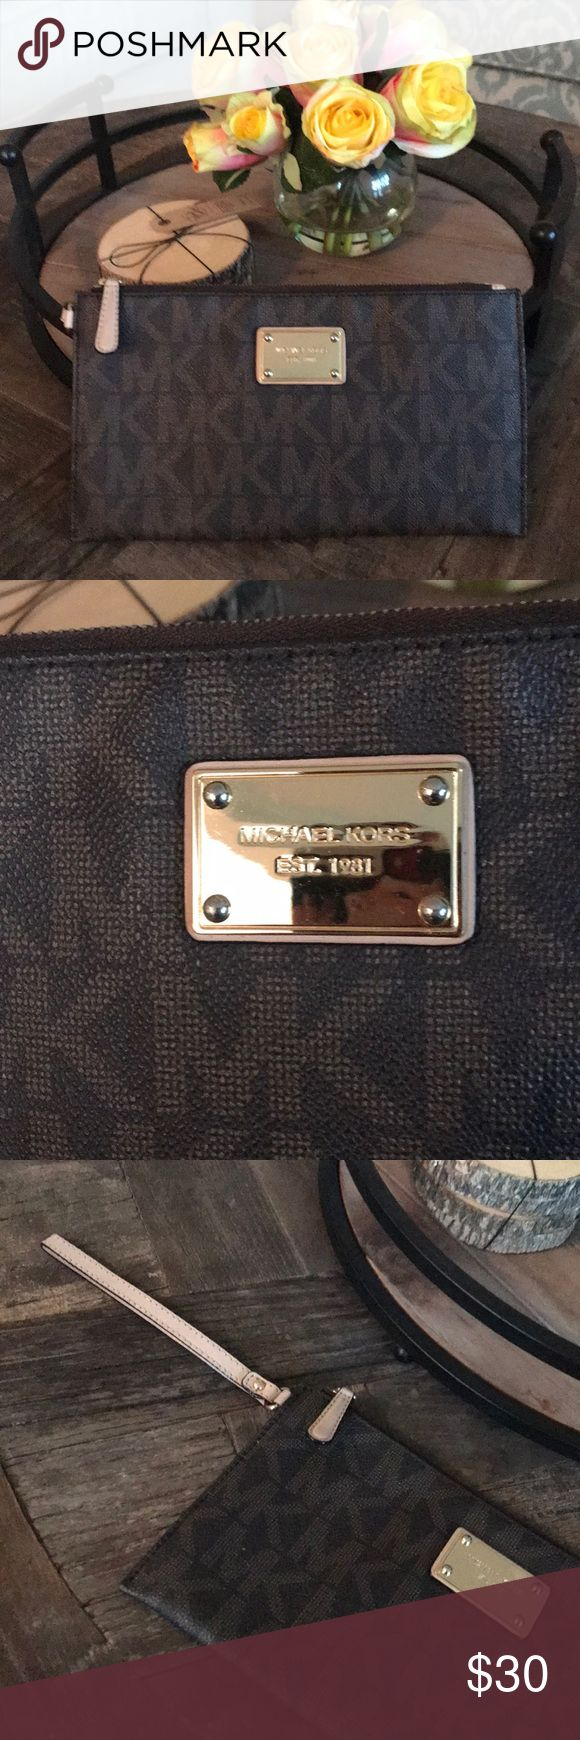 Michael Kors Brown Wristlet Clutch Michael Kors Brown Wristlet. Perfect condition. No wear or tears. Practically new and right from the factory! Michael Kors Bags Clutches & Wristlets